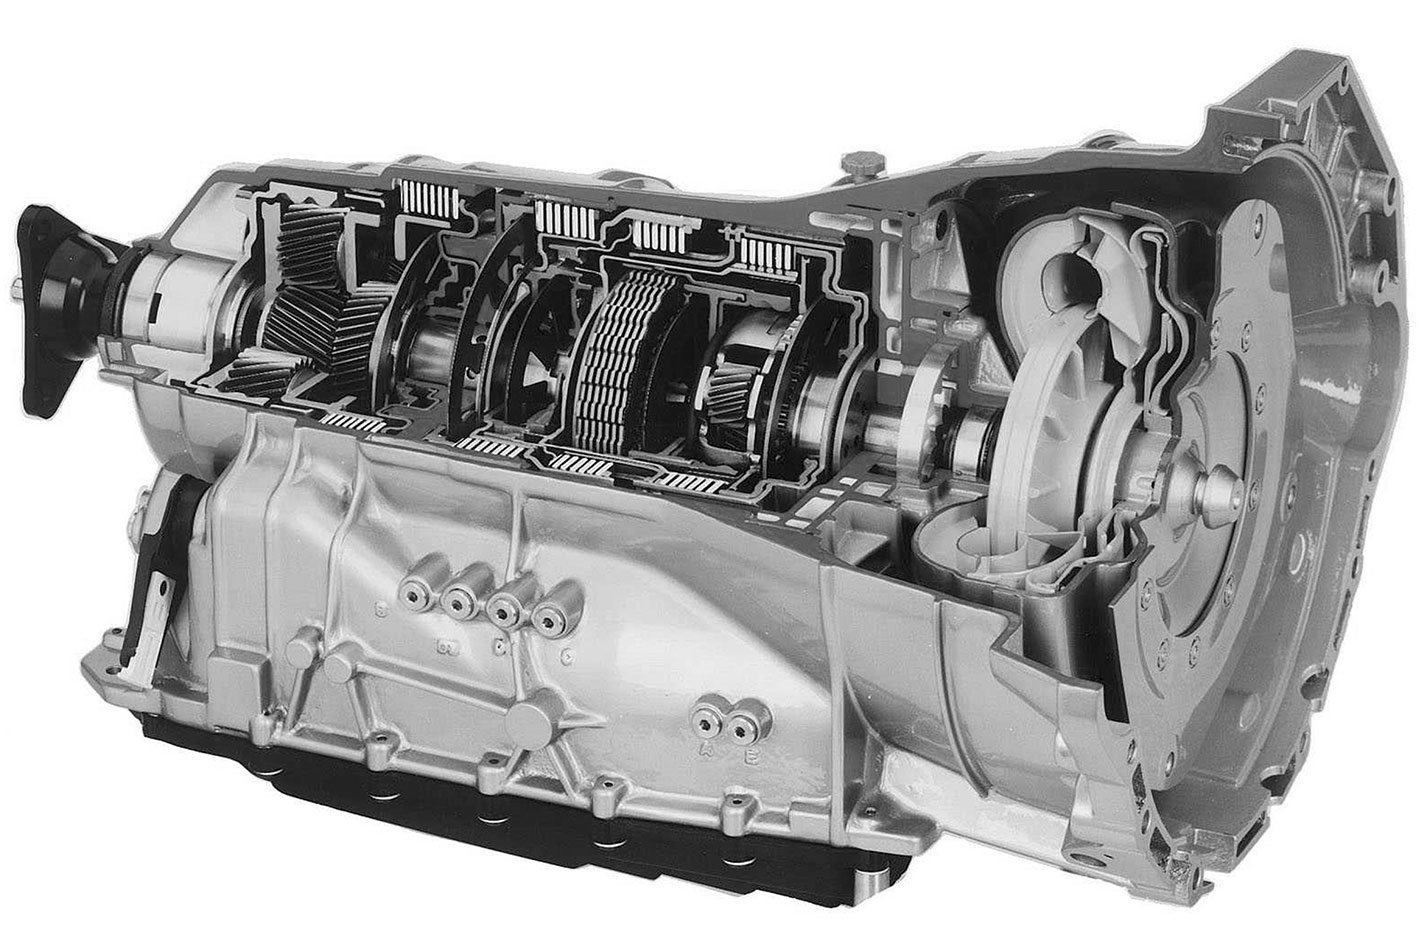 15 Years of Ford's Barra Engine: What to Look for When Buying a Barra